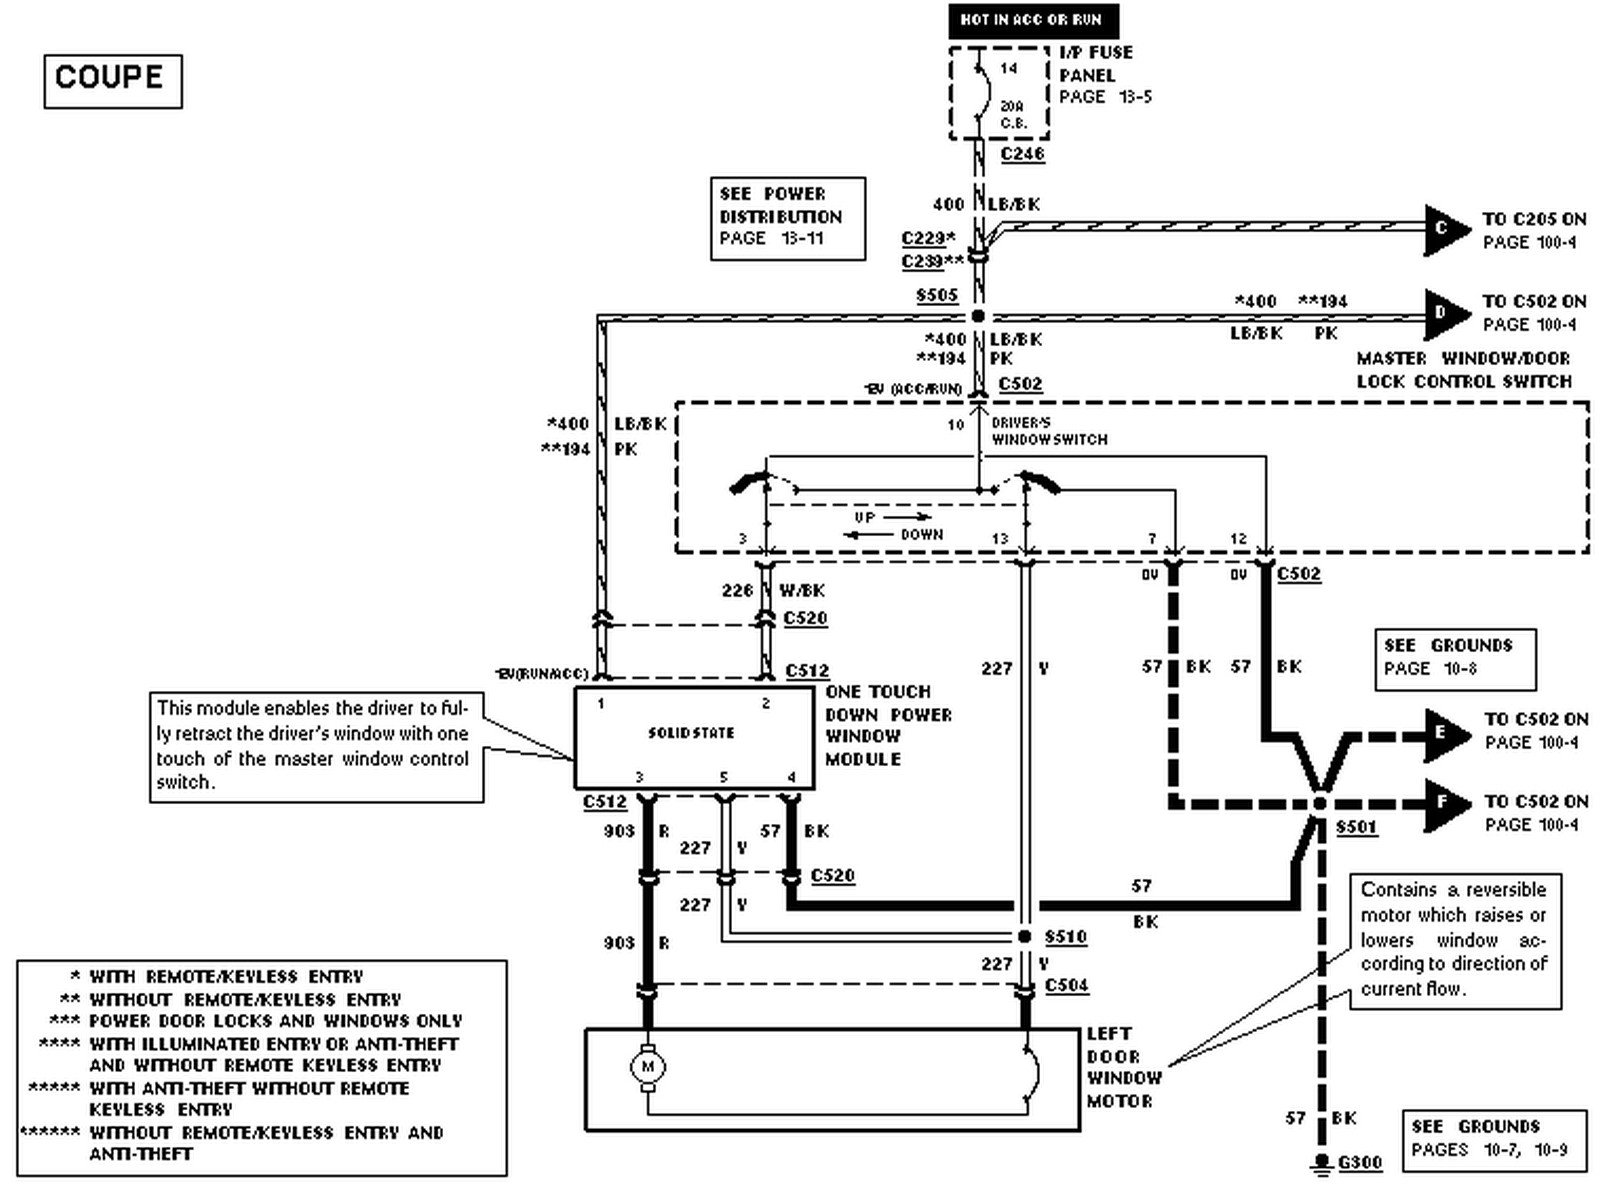 Switch Wiring Diagram For 1995 Ford Mustang Convertible - Word Wiring  Diagram deep-border - deep-border.lalunacrescente.it | Wiring Diagram For 1996 Ford Mustang Convertible |  | La Luna Crescente